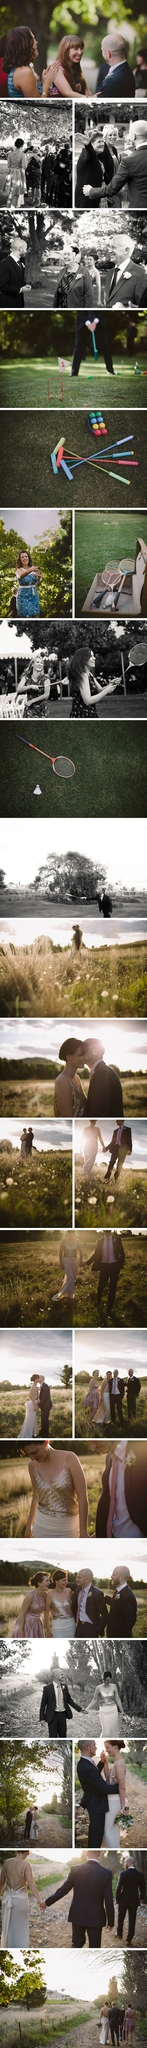 Poachers Pantry Wedding Photos